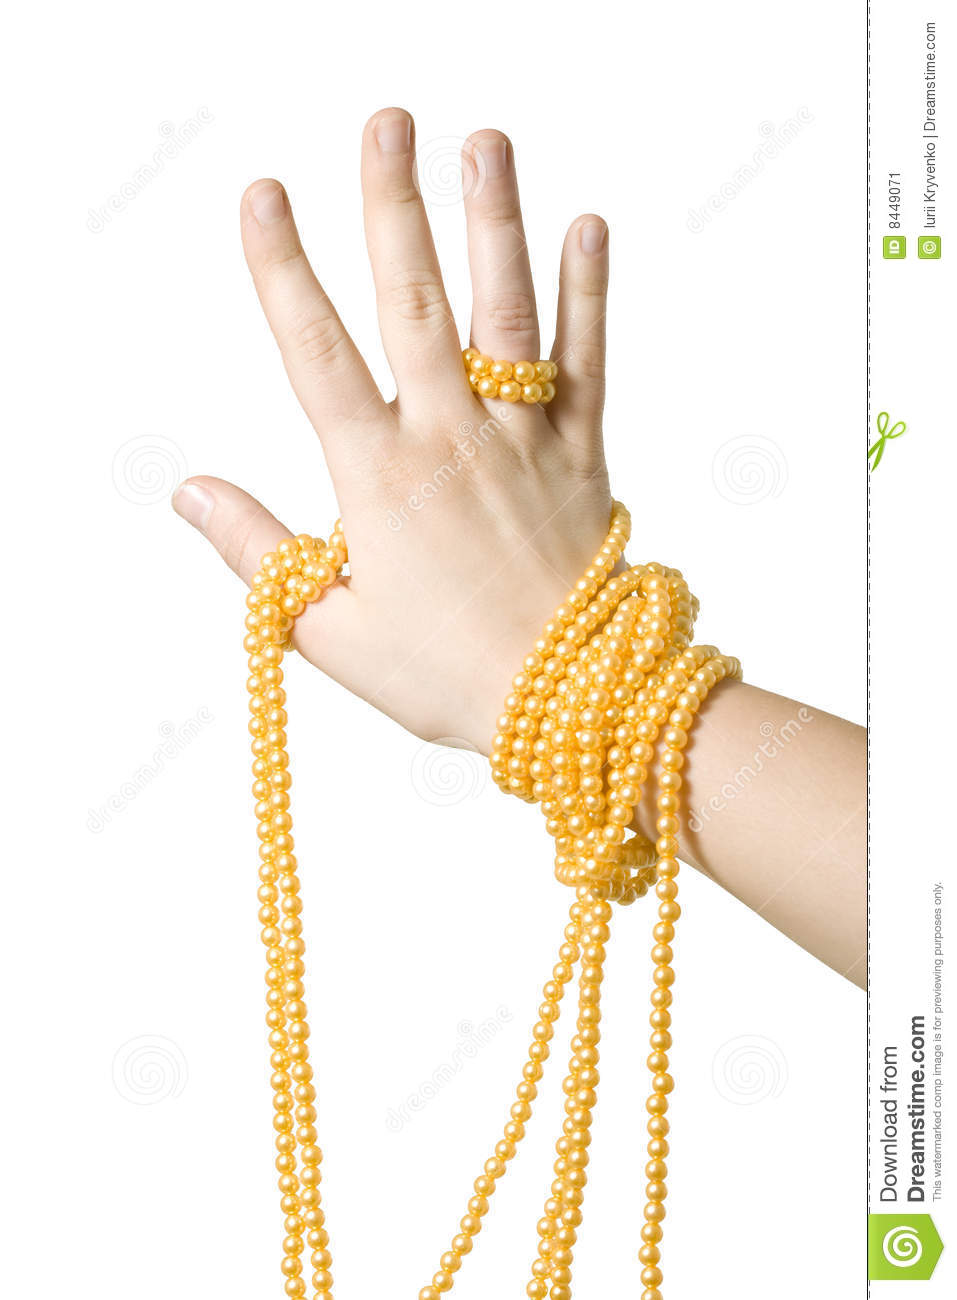 Hand with perls